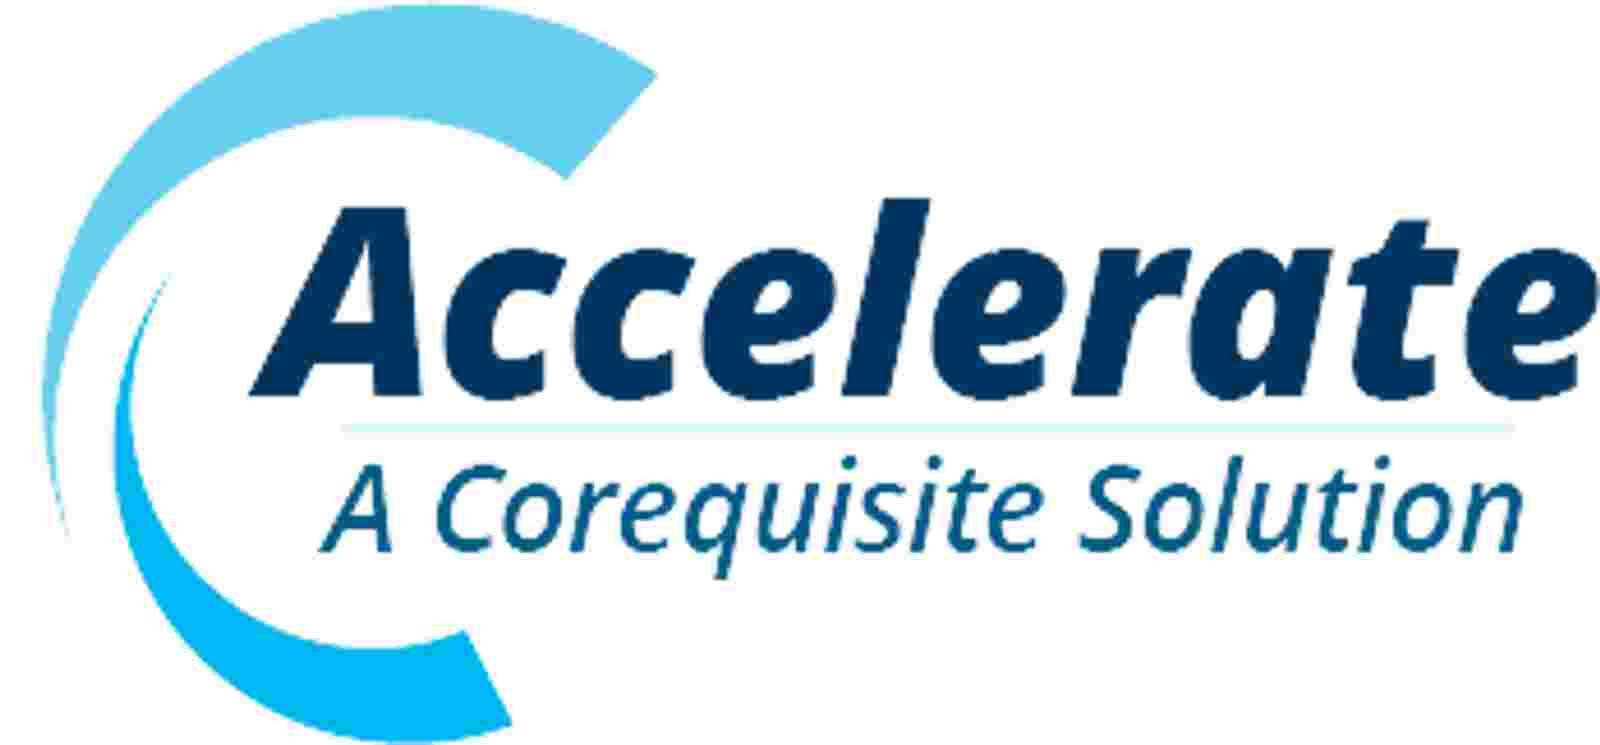 Accelerate A Corequisite Solution